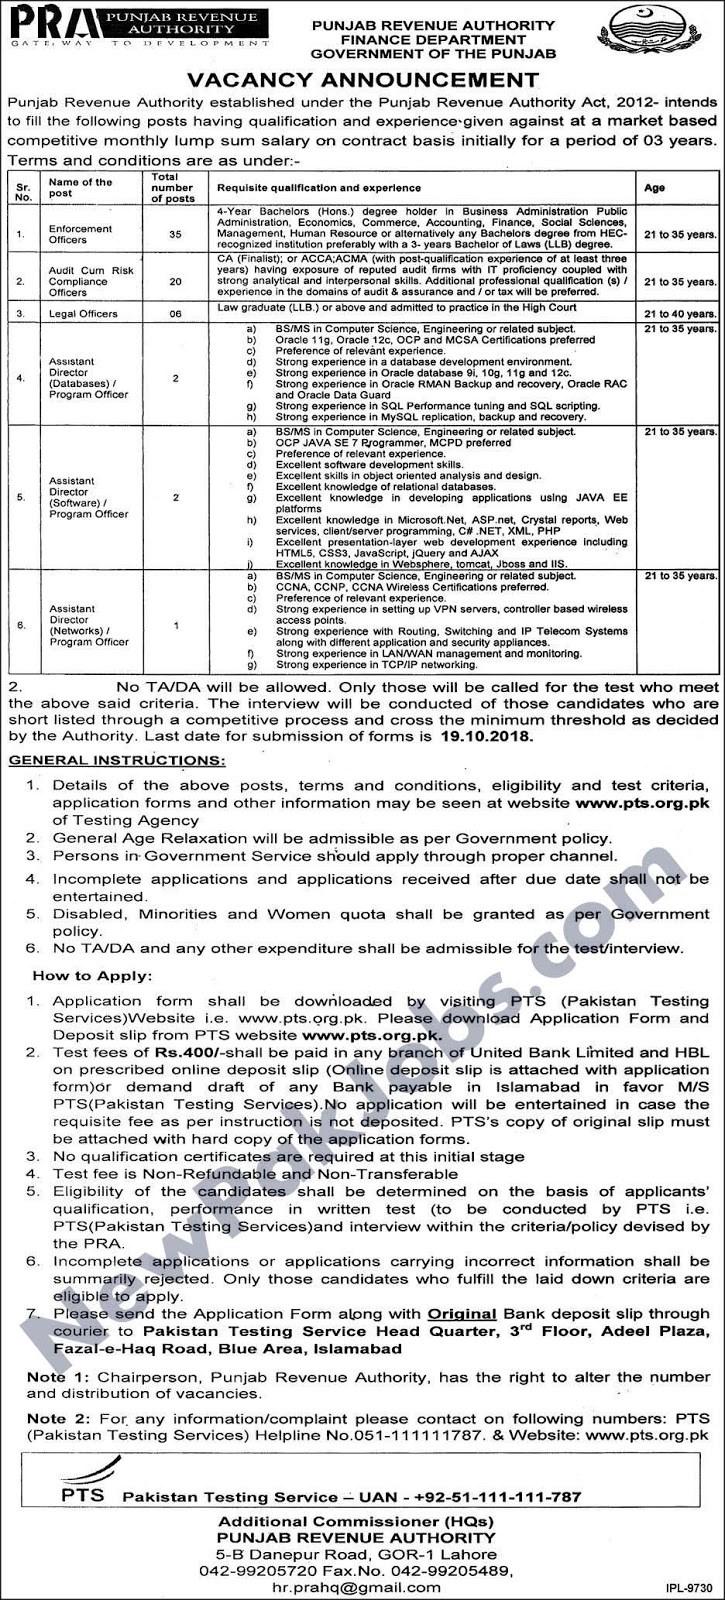 Jobs Through PTS in Punjab Revenue Authority Finance Department